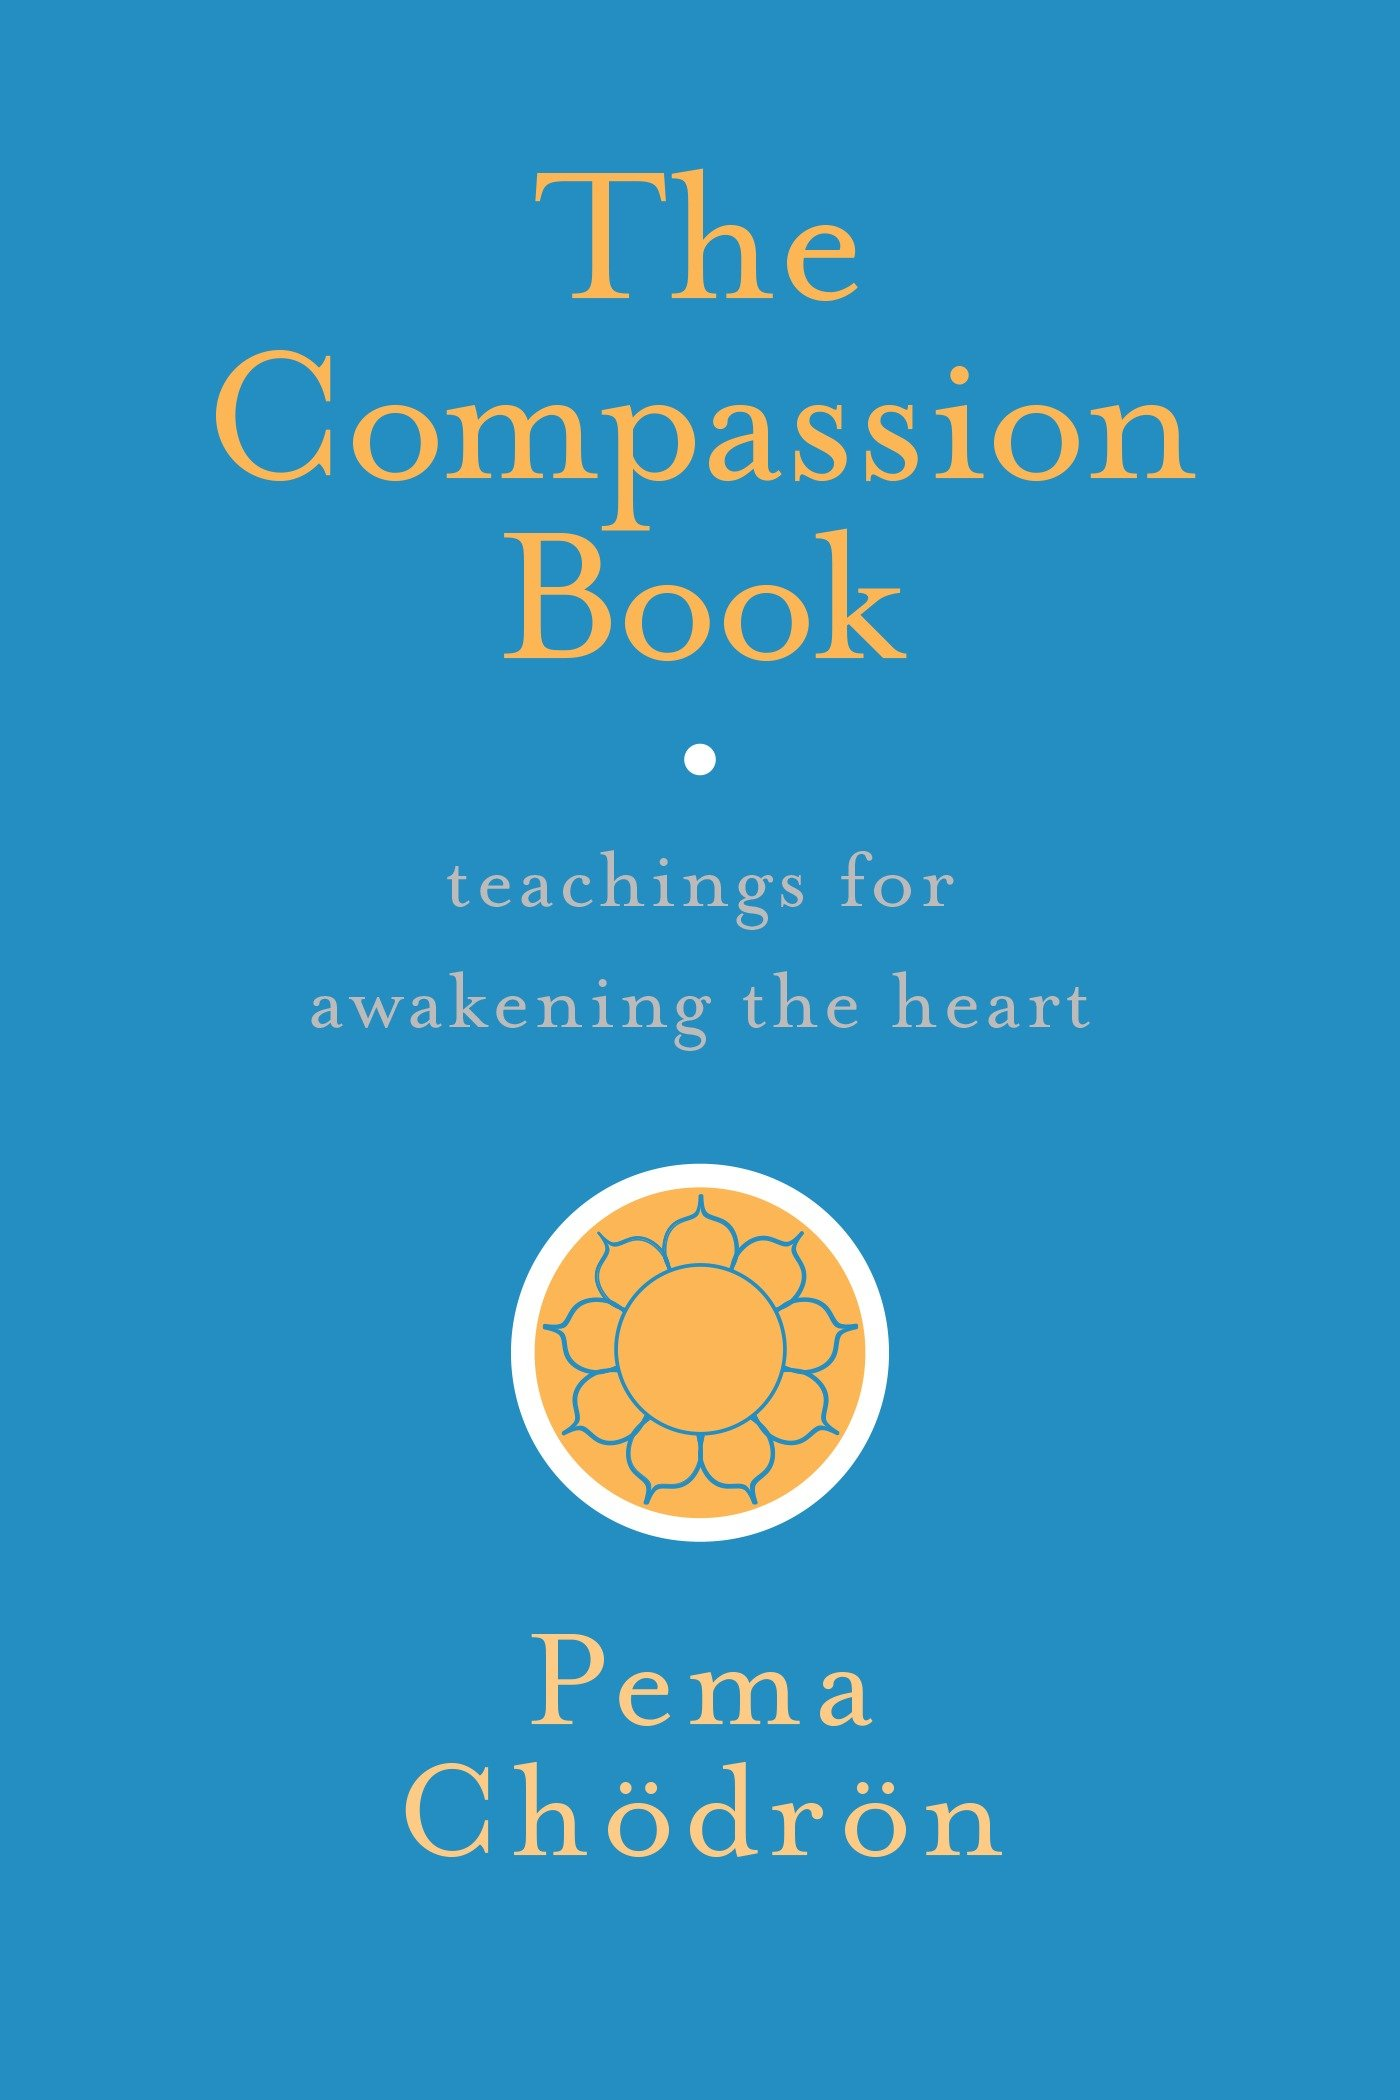 The compassion book cover image